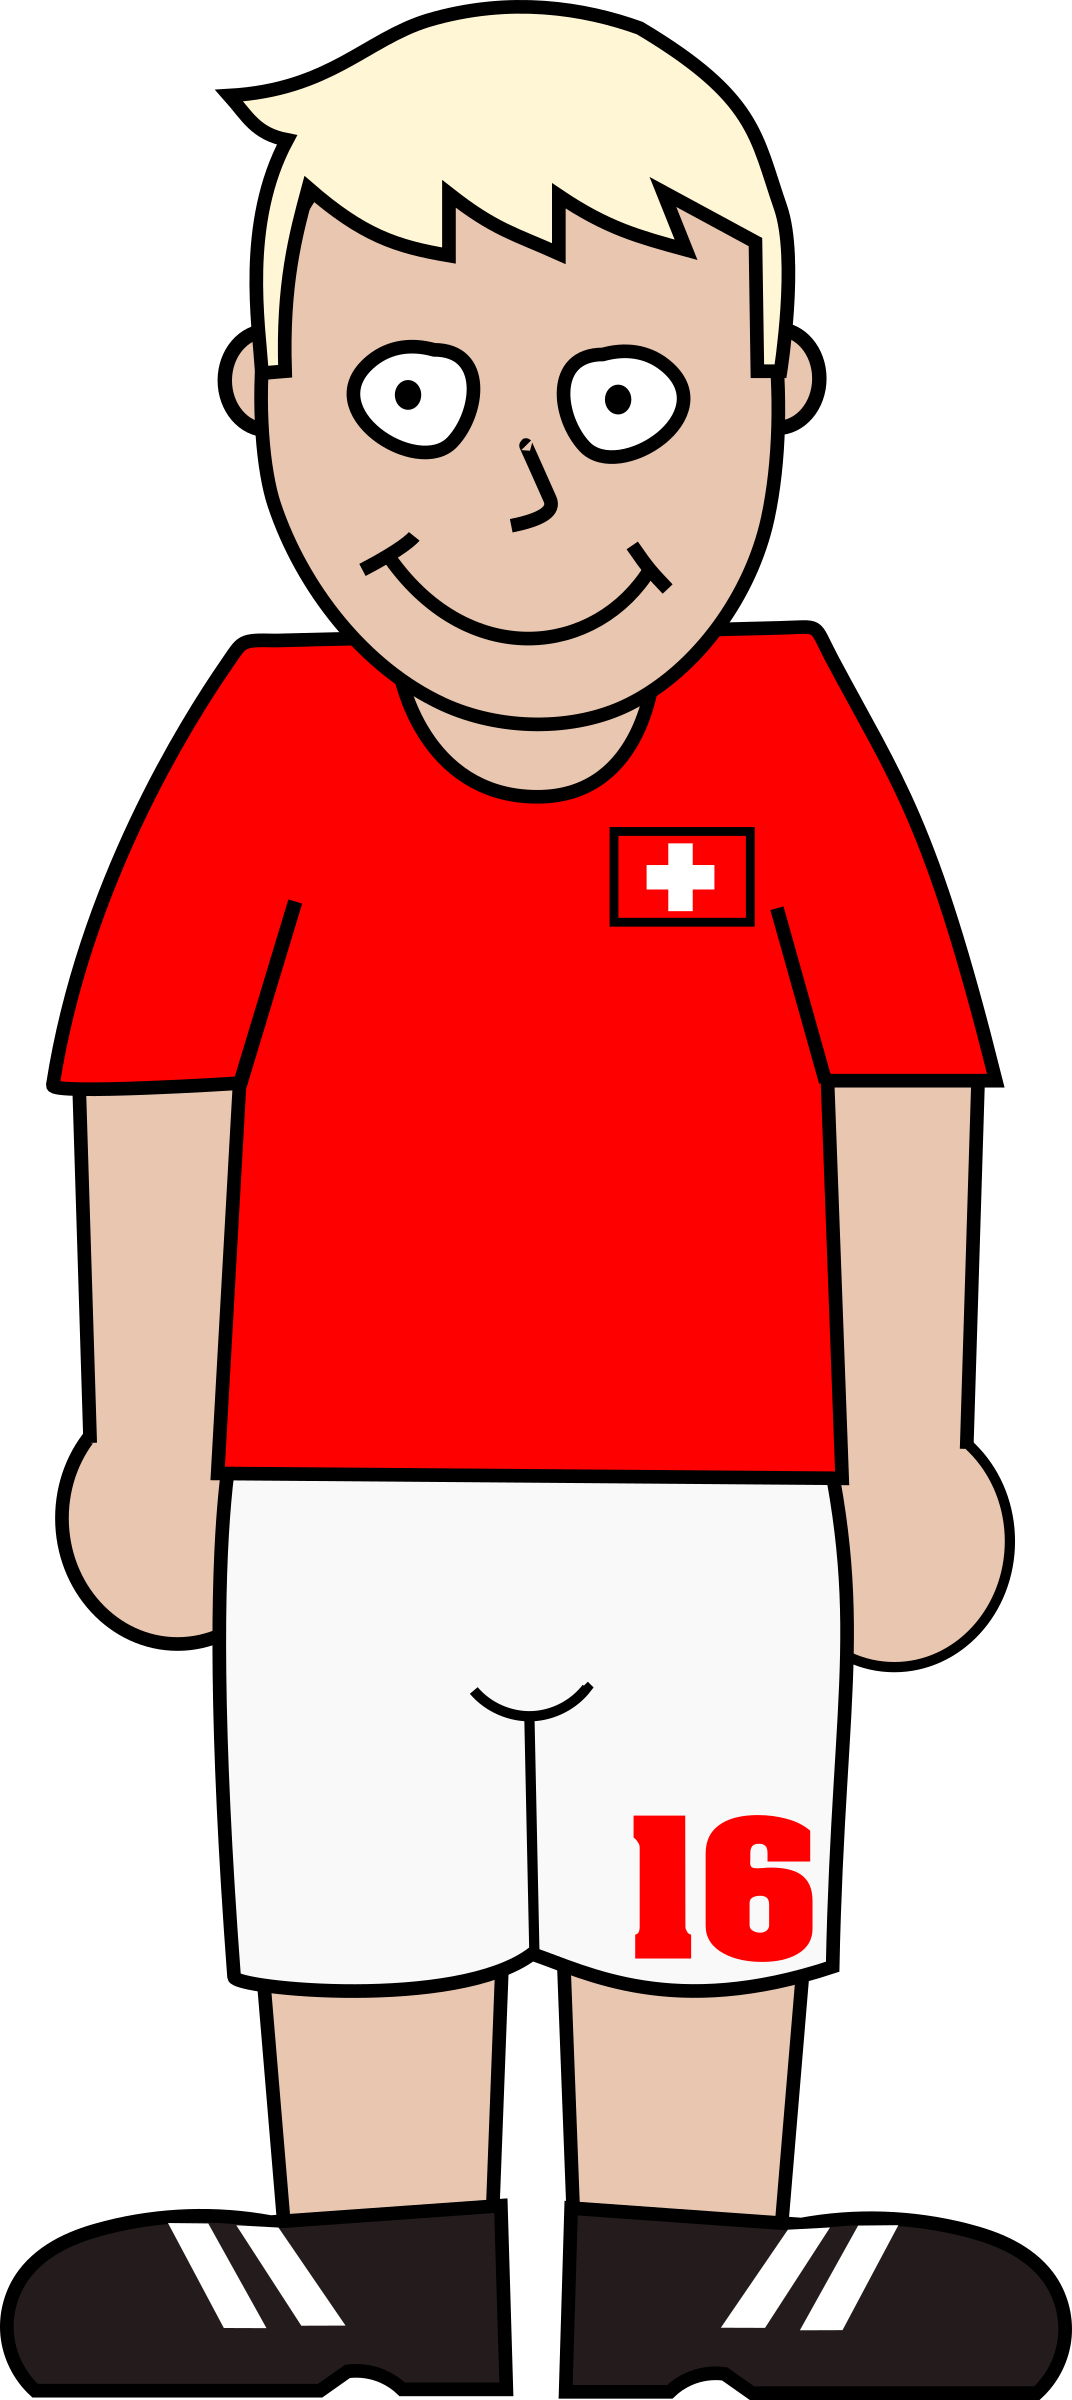 Red football jersey clipart graphic Clipart - Football player switzerland graphic